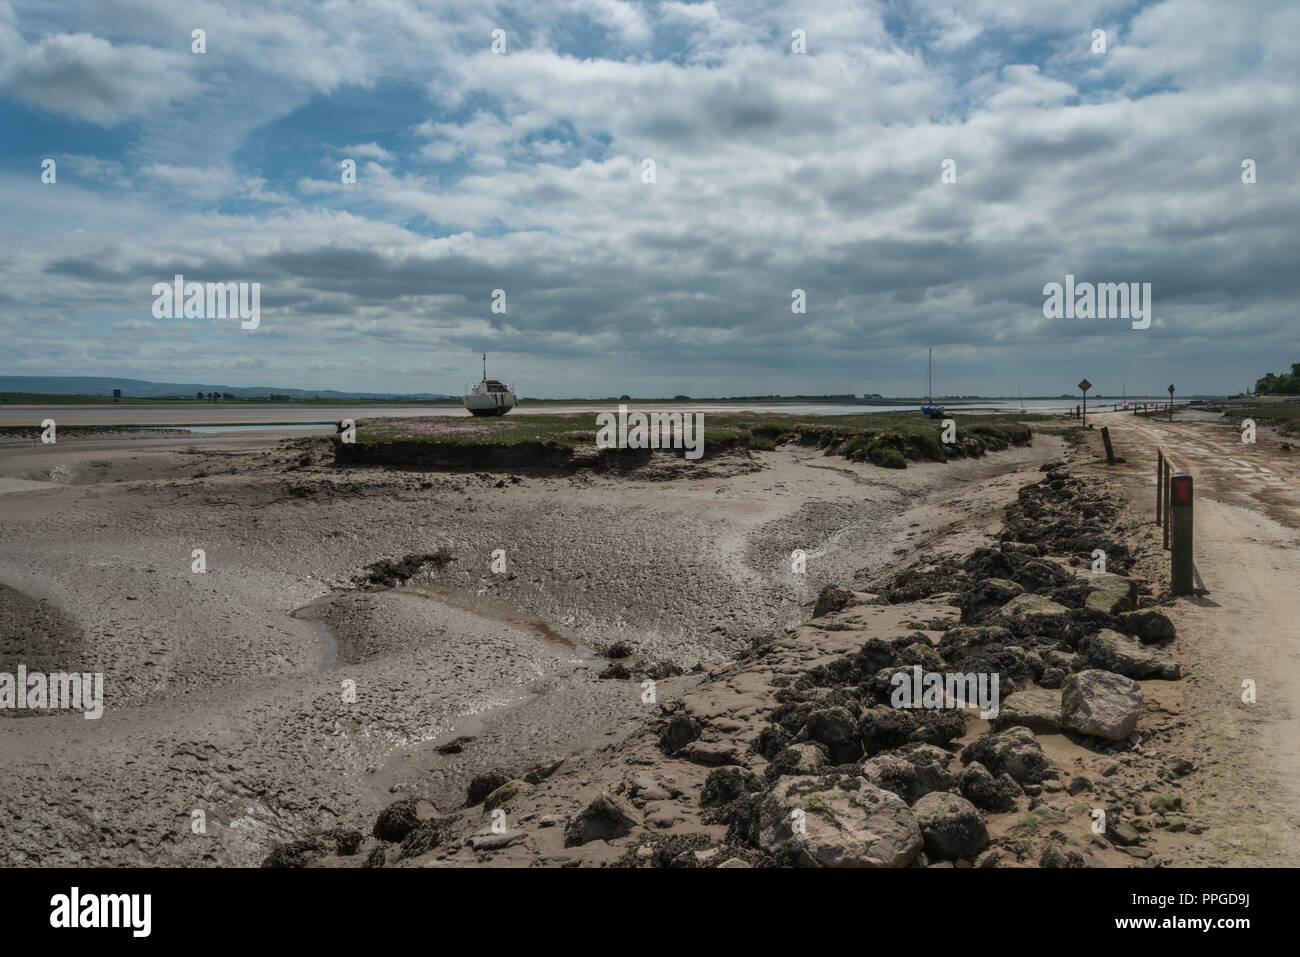 The remote Lancashire village of Sunderland Point on a June morning at low tide, England, UK with boats moored. Stock Photo